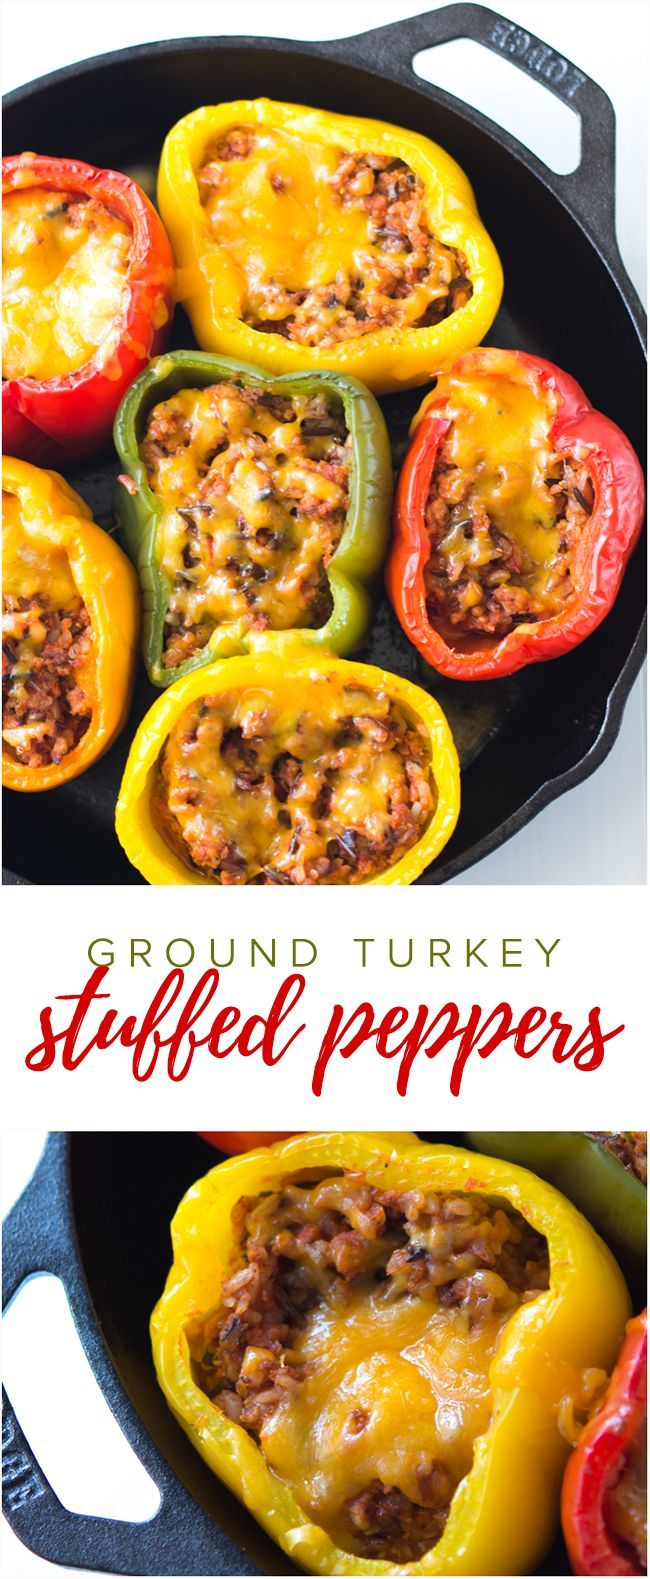 Ground Turkey Stuffed Peppers. Easy Turkey RecipesCrockpot ...